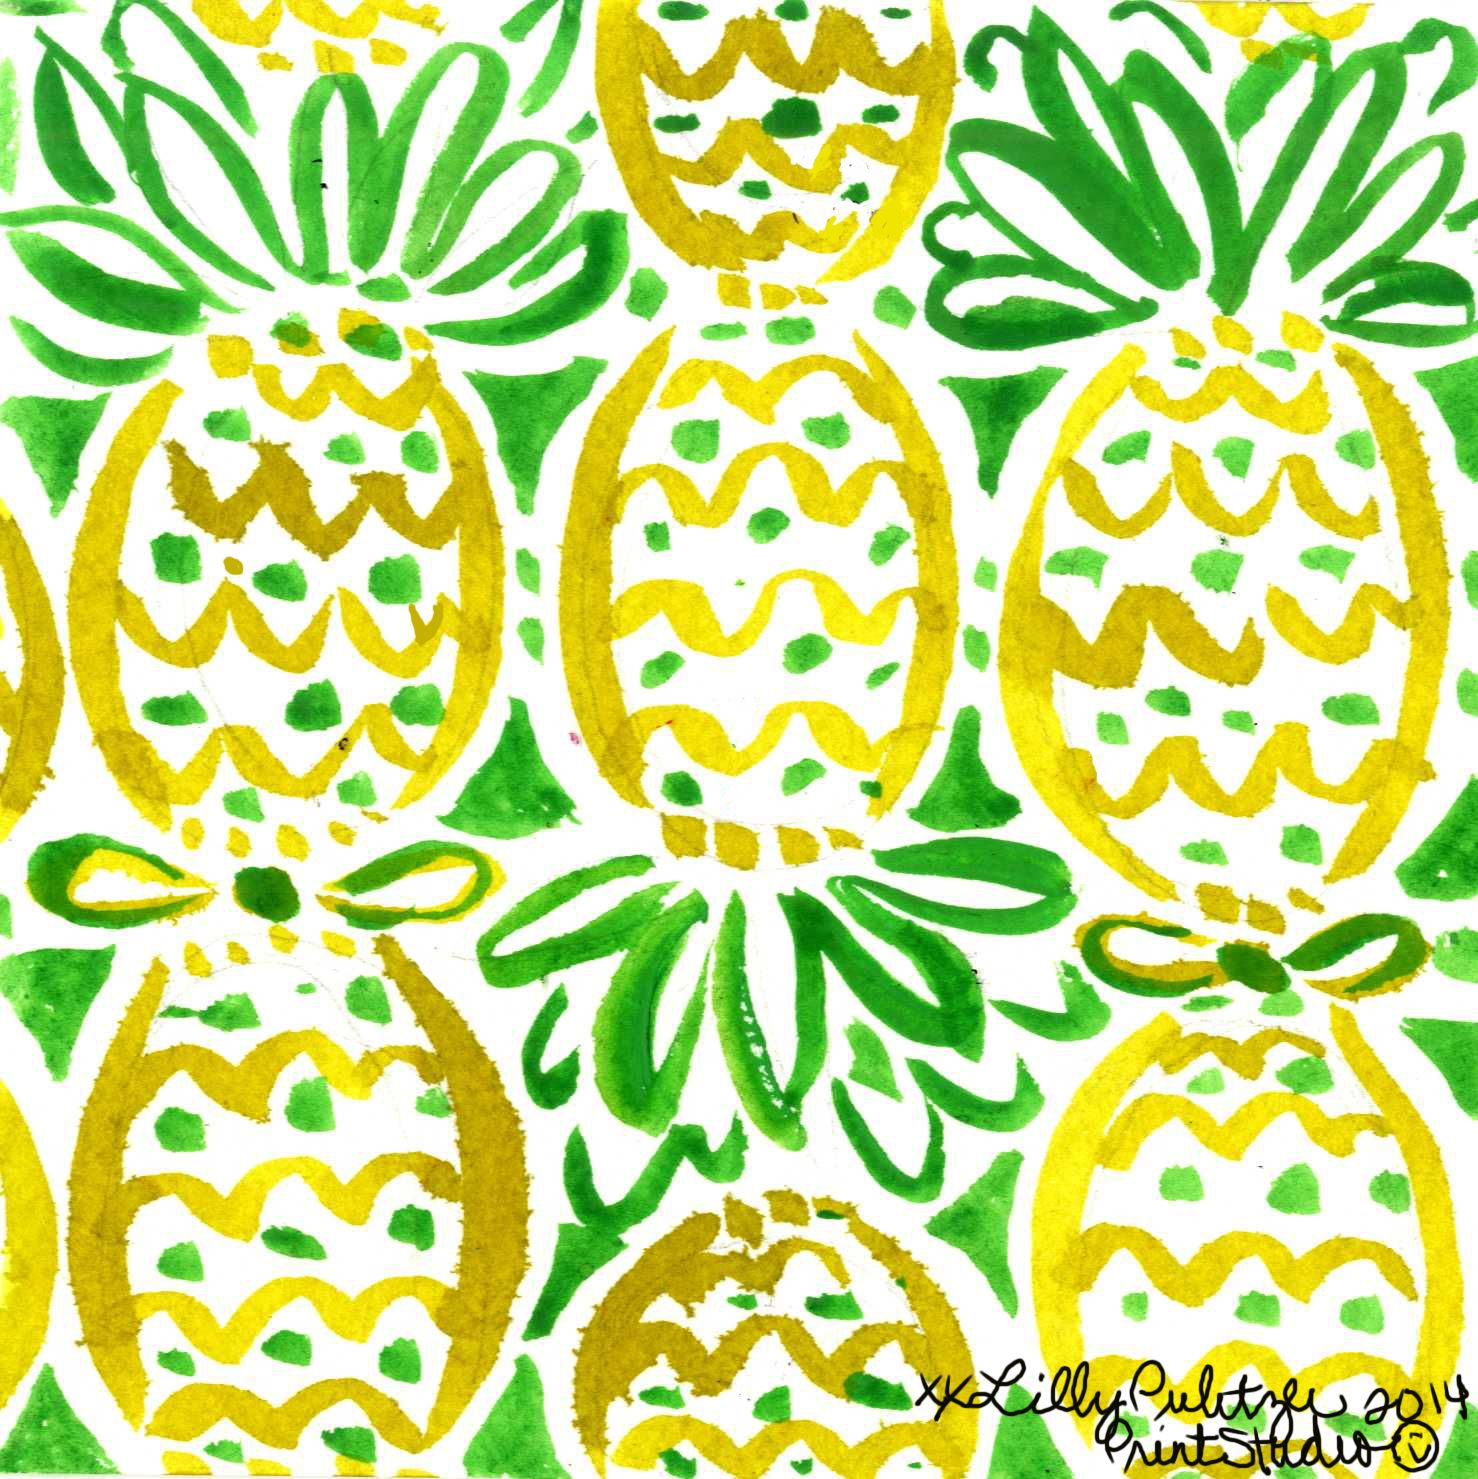 resort to the core lilly5x5 lilly 5x5 pinterest resorts lily pulitzer and prints. Black Bedroom Furniture Sets. Home Design Ideas